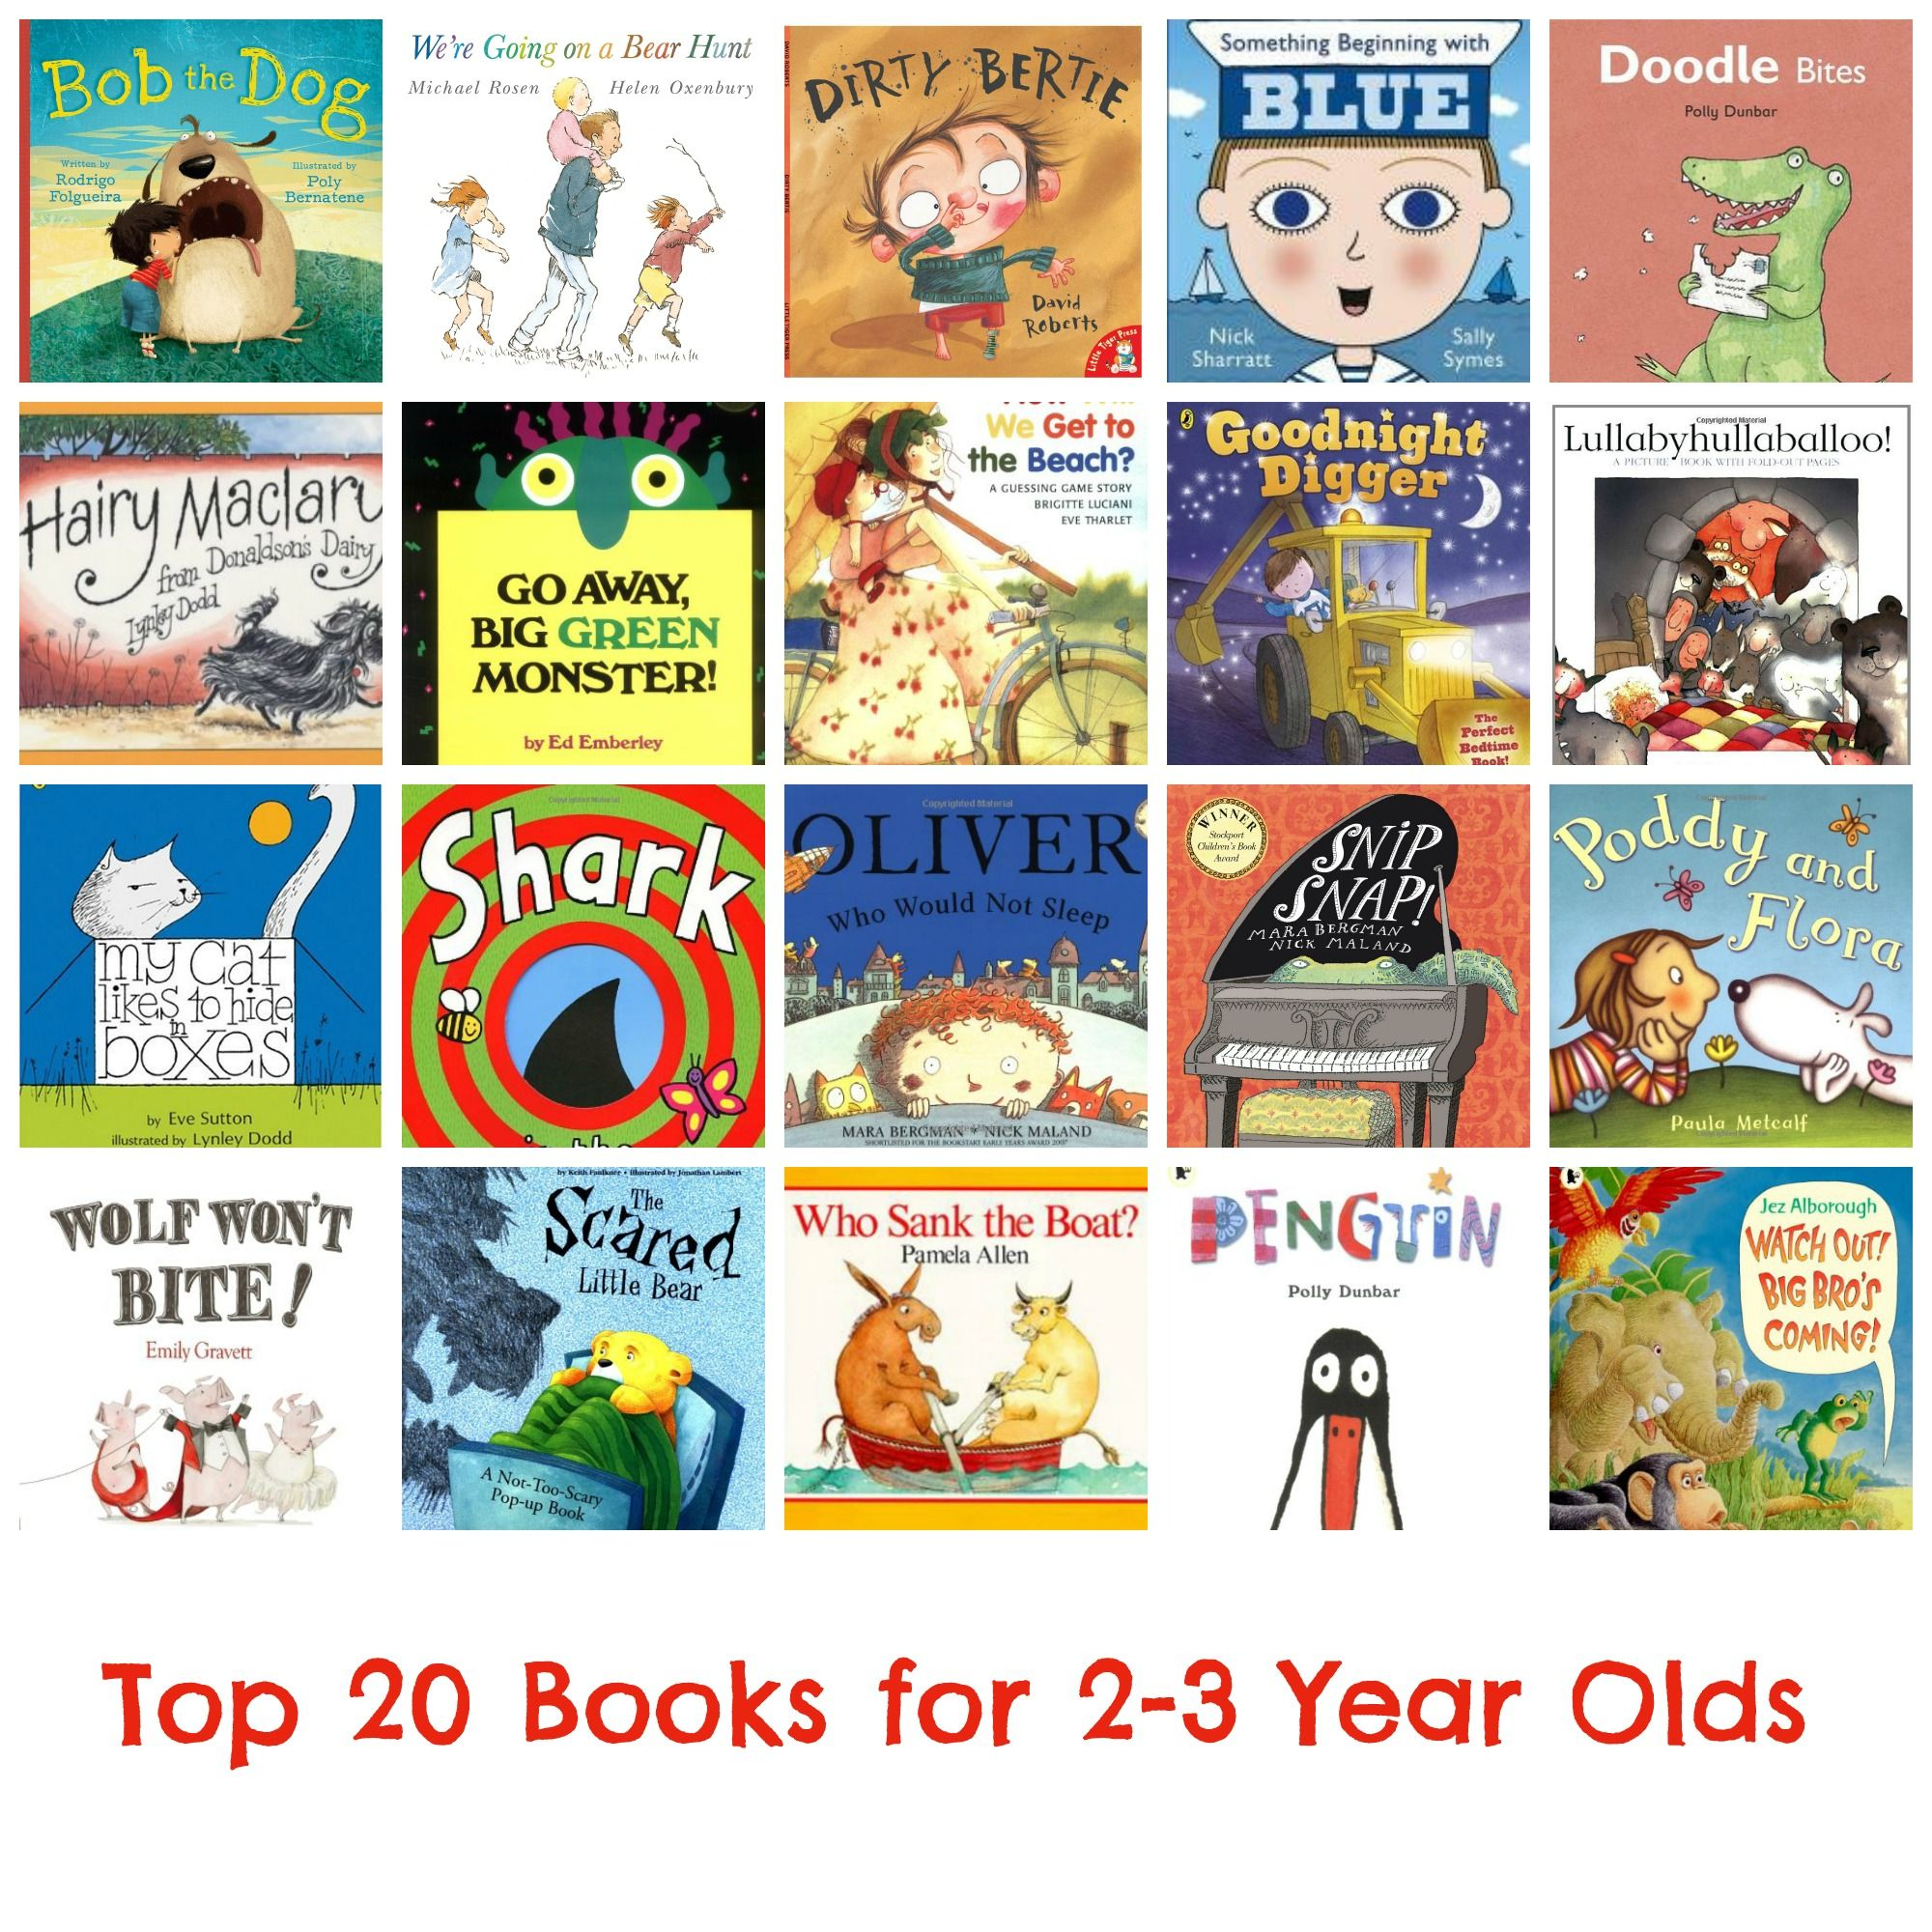 Are Bedtime Stories On The Way Out Preschool Books Toddler Books Childrens Reading Can year olds read ya books